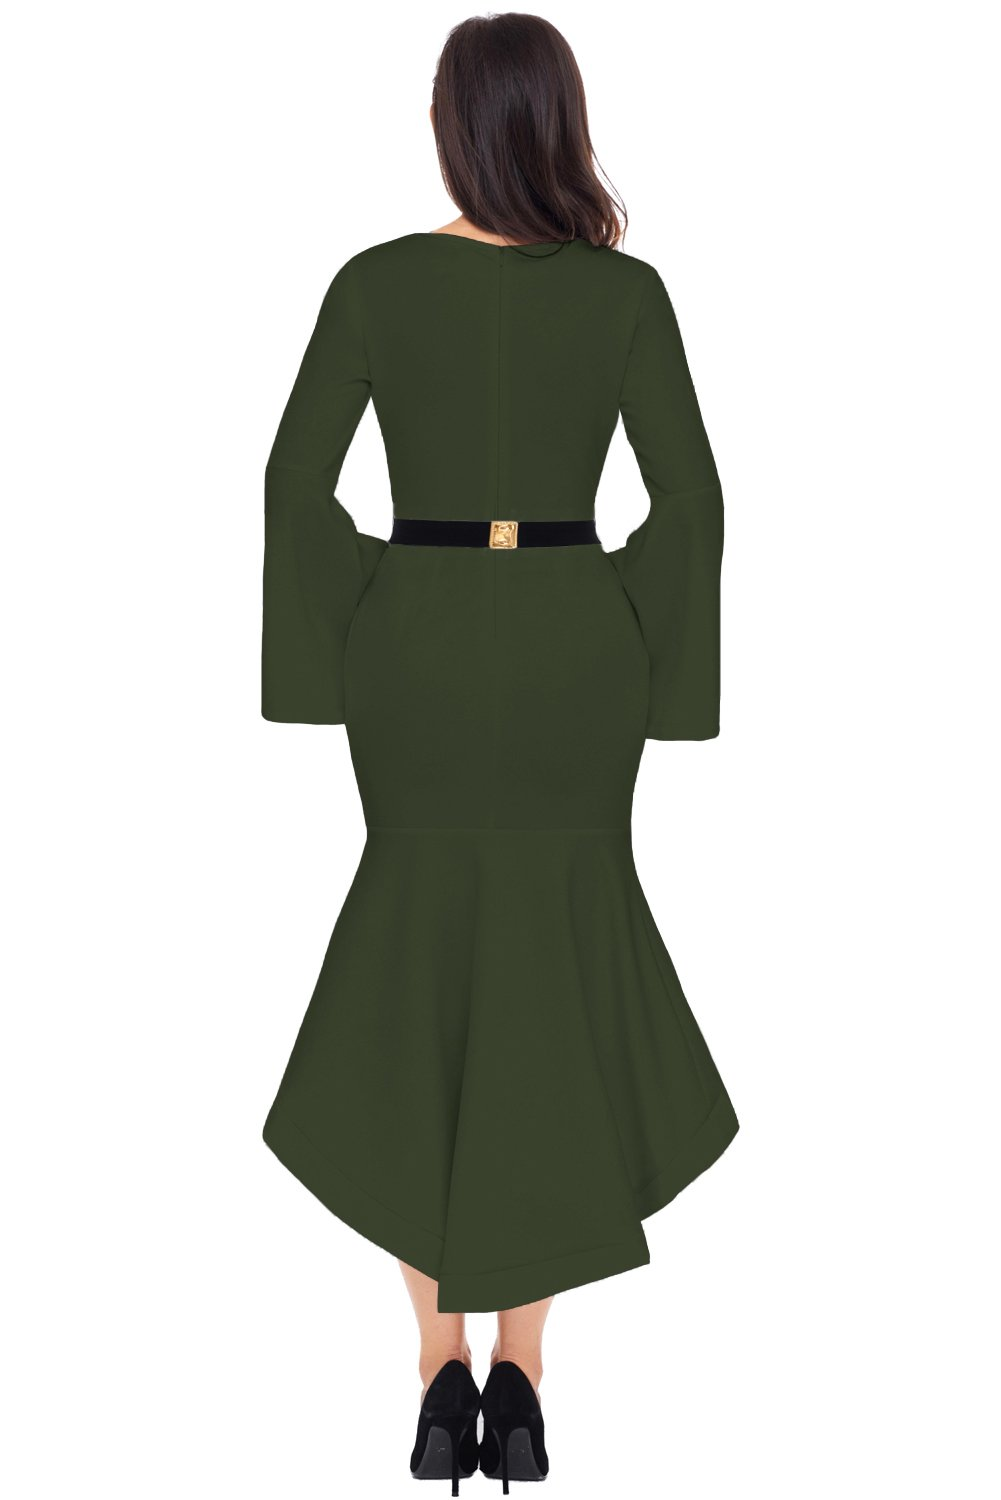 Women Clothing Designers The Best Olive Green Bell Sleeve Dip Hem Belted Dress